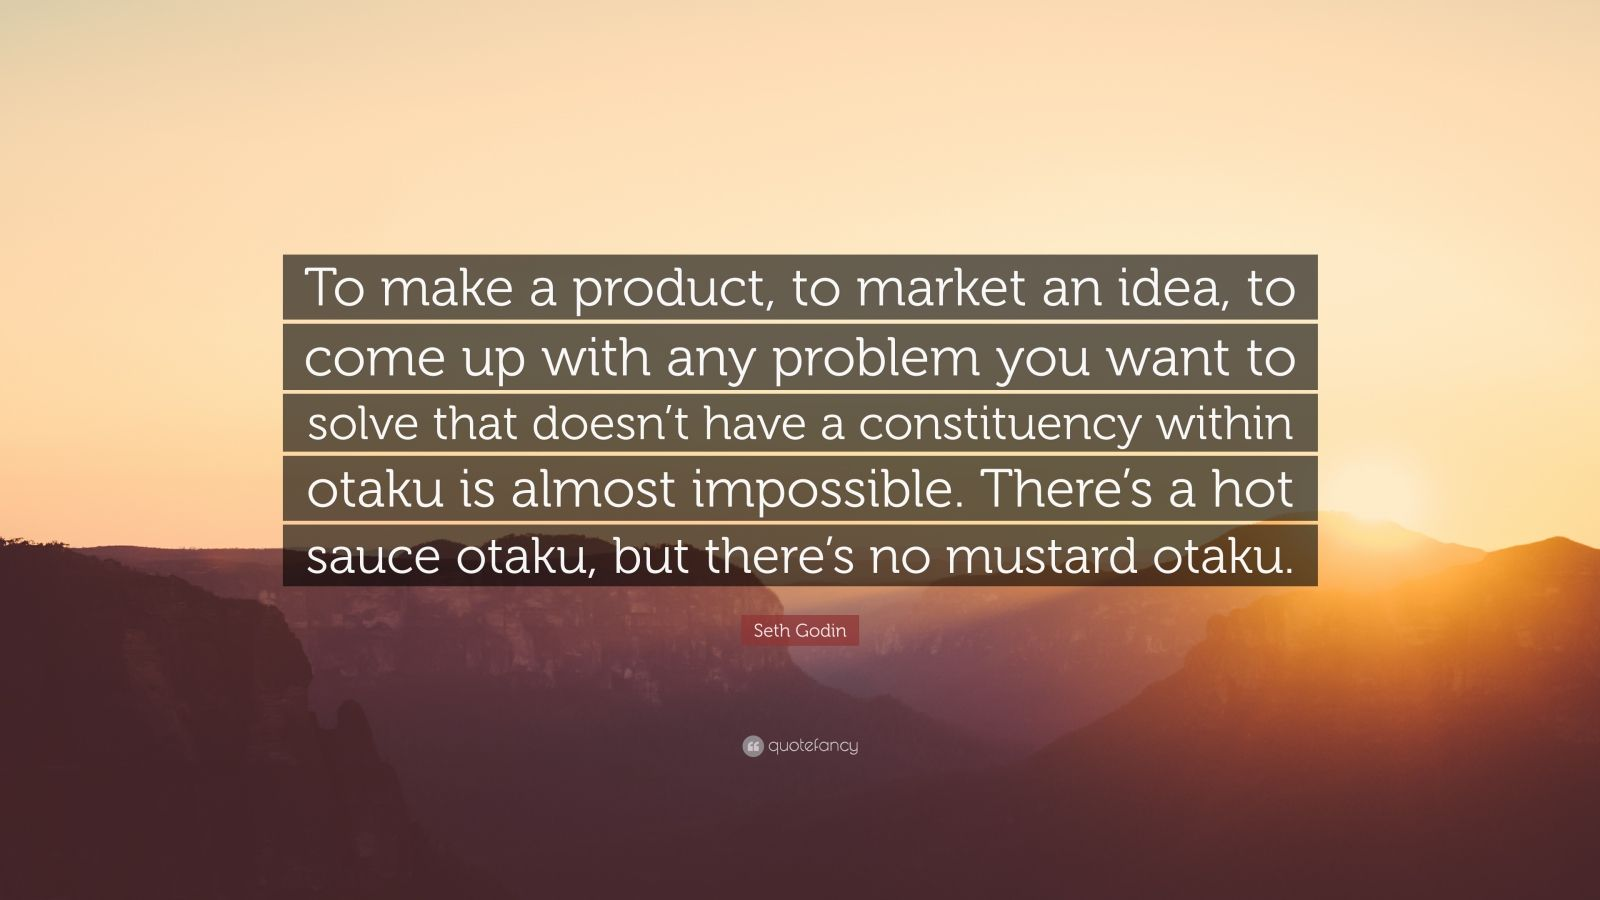 """Seth Godin Quote: """"To make a product, to market an idea, to come up with any problem you want to solve that doesn't have a constituency within otaku is almost impossible. There's a hot sauce otaku, but there's no mustard otaku."""""""